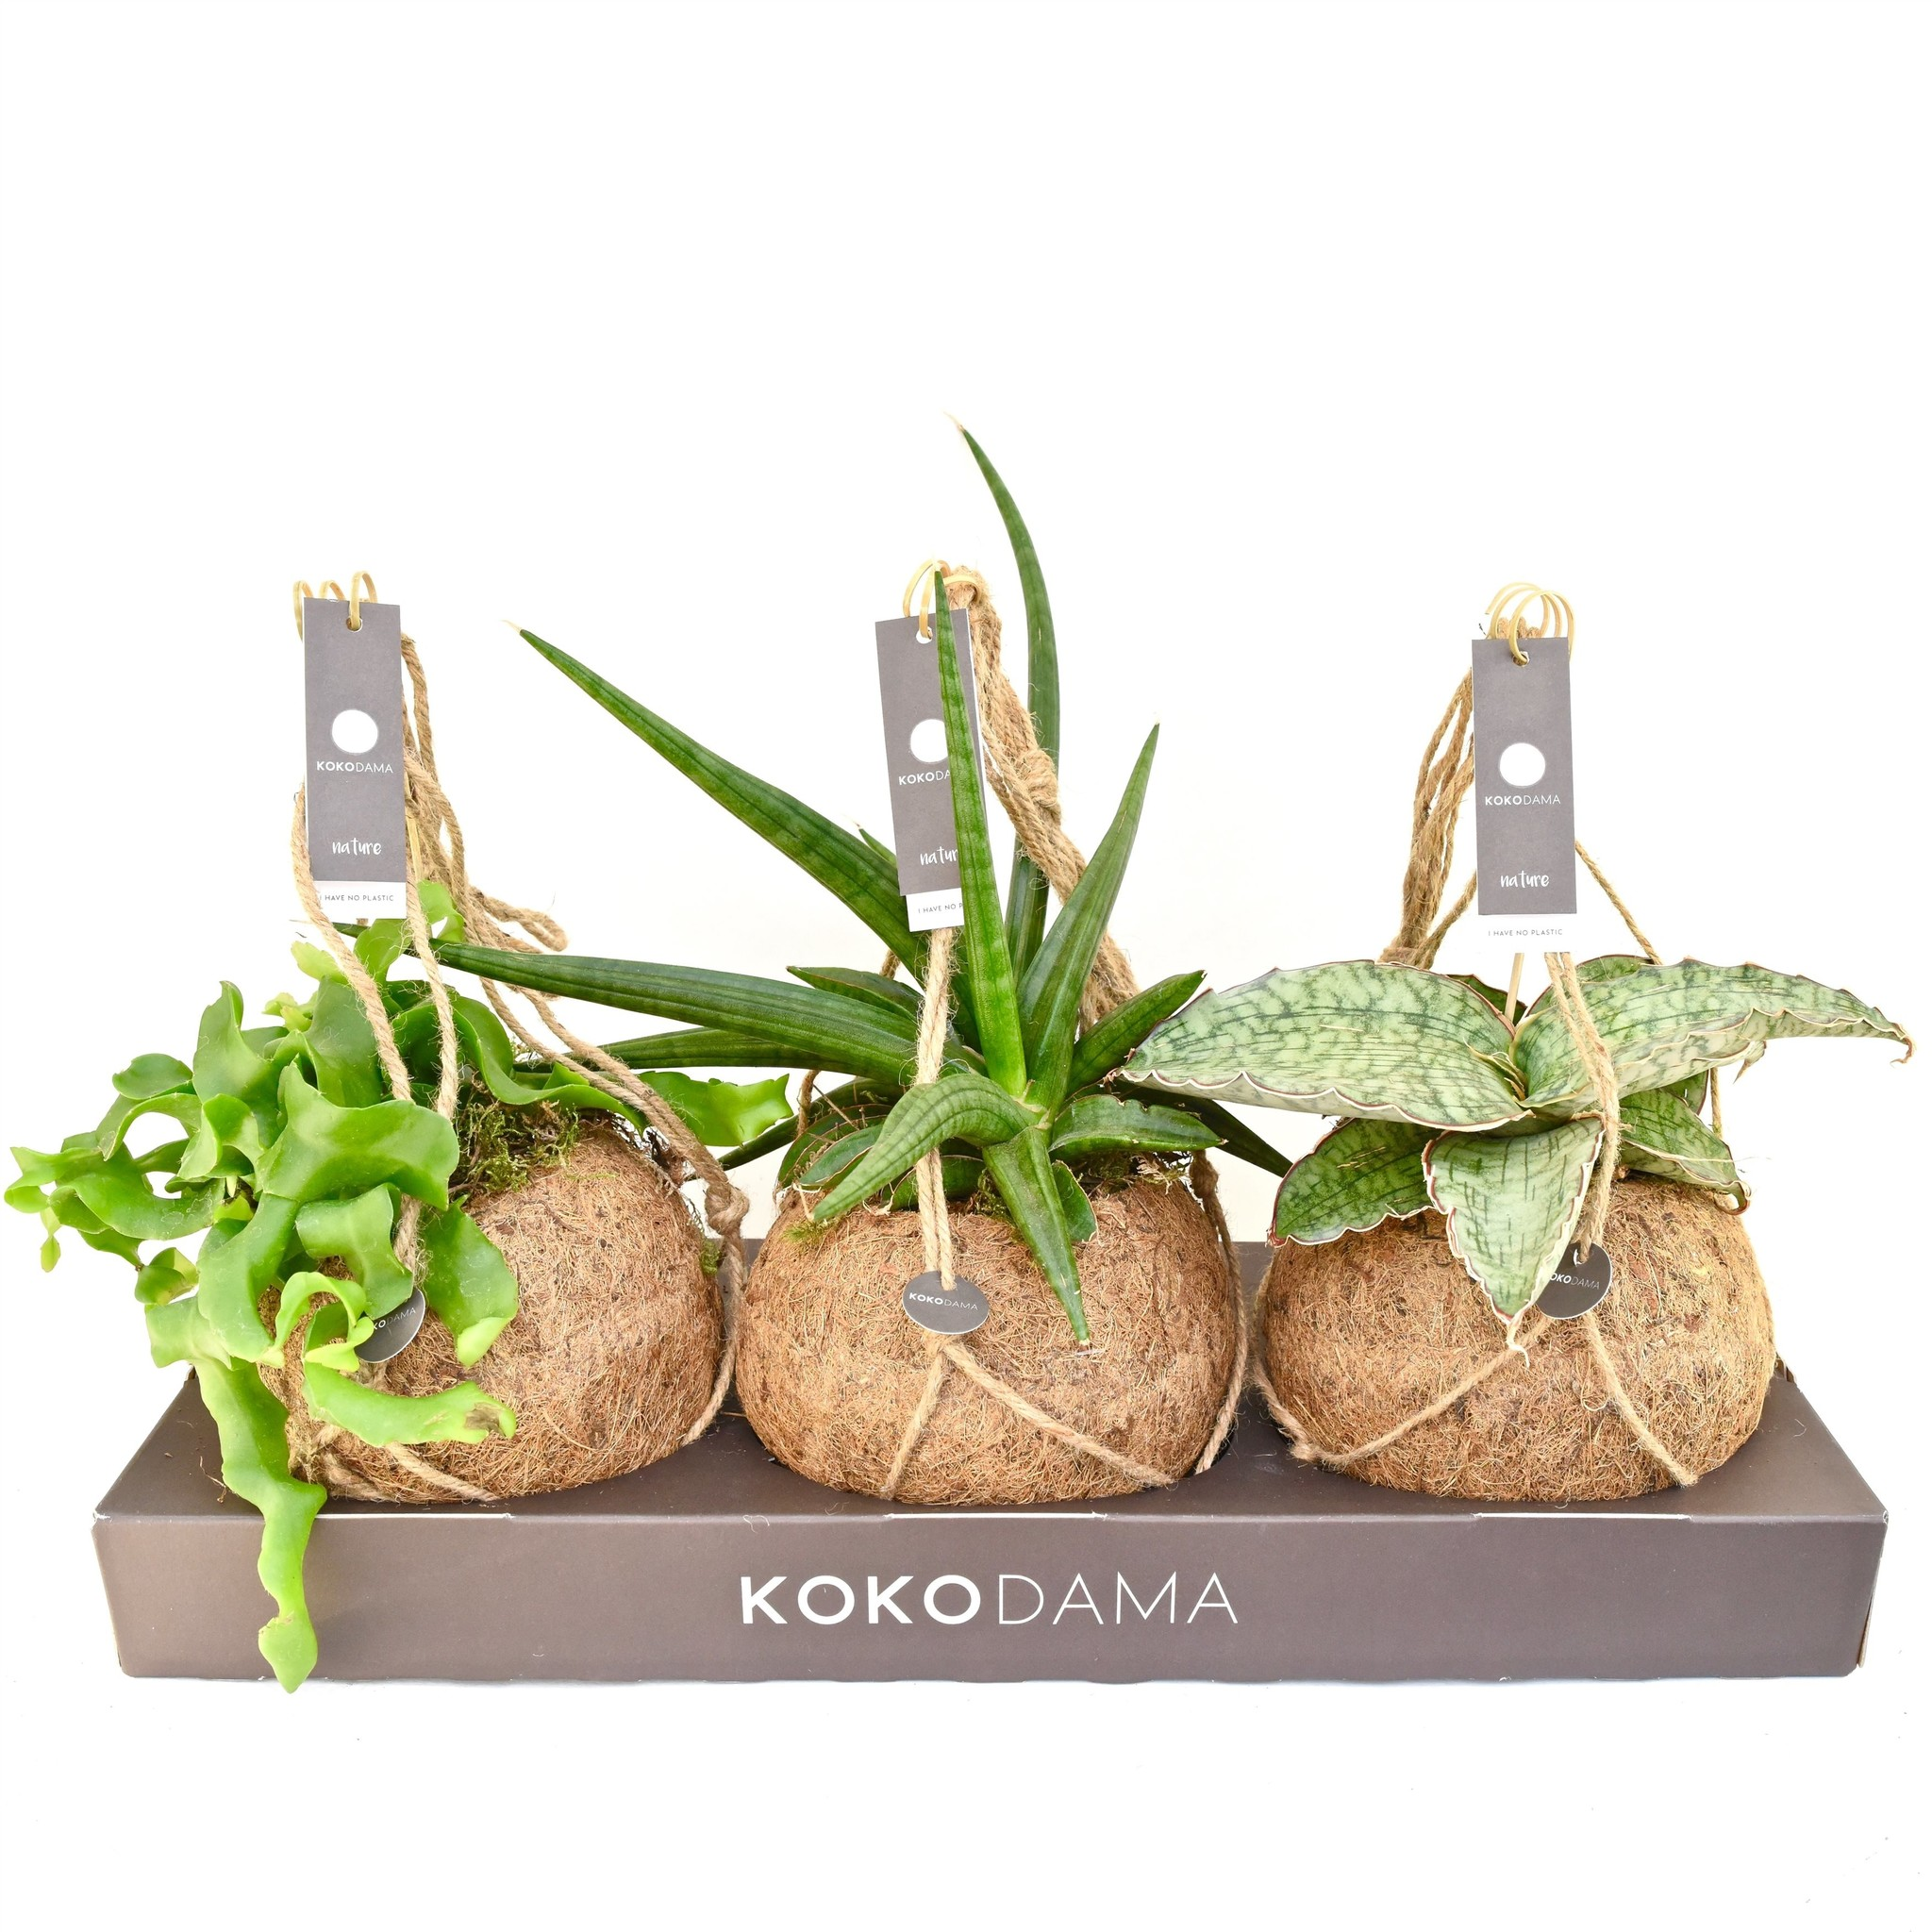 Schaduwplanten Badkamer Kokodama Tough Mix No Plastic 100 Natural